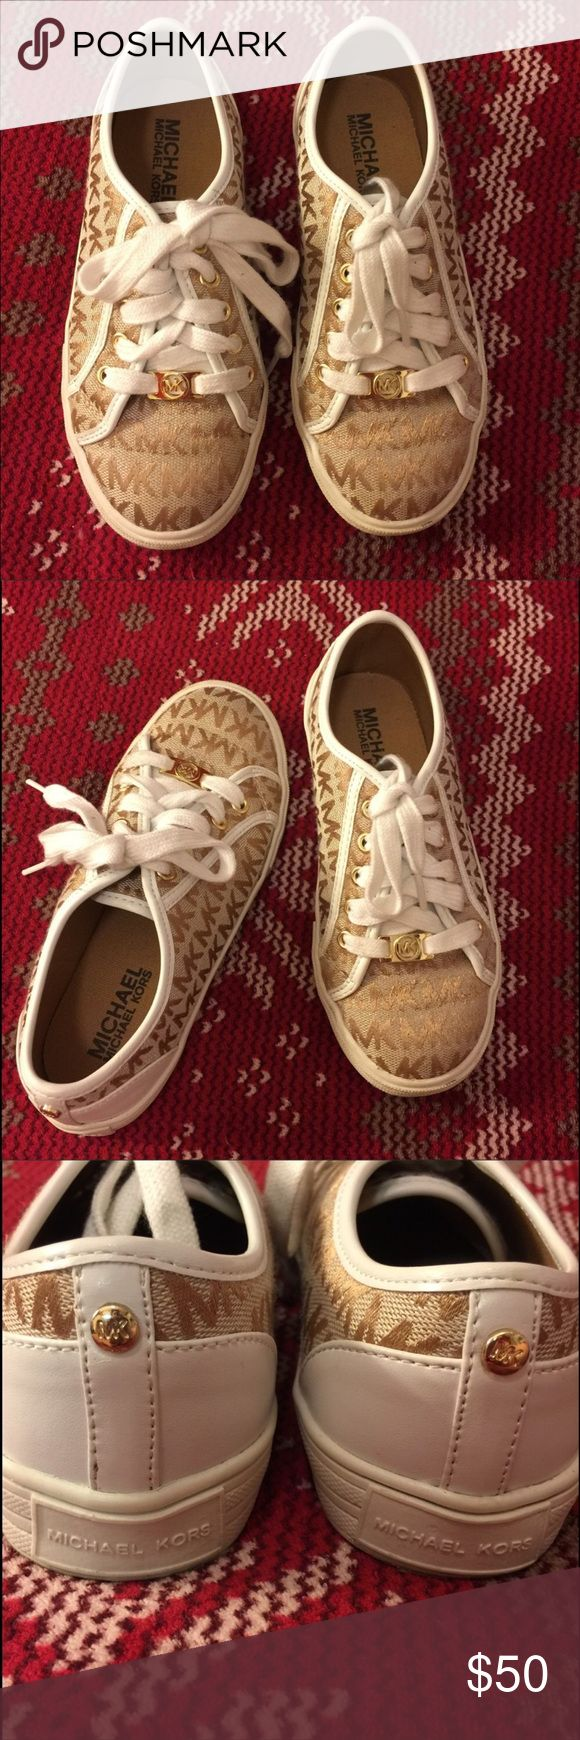 Michael Kors Limited Edition Gold Kids Sneakers Michael Kors white and gold limited edition kids sneakers! Worn once for family portraits so in amazing condition, only wear at the bottom of the shoe from walking for an hour. Originally 87$ and sold out in stores! Michael Kors Shoes Sneakers